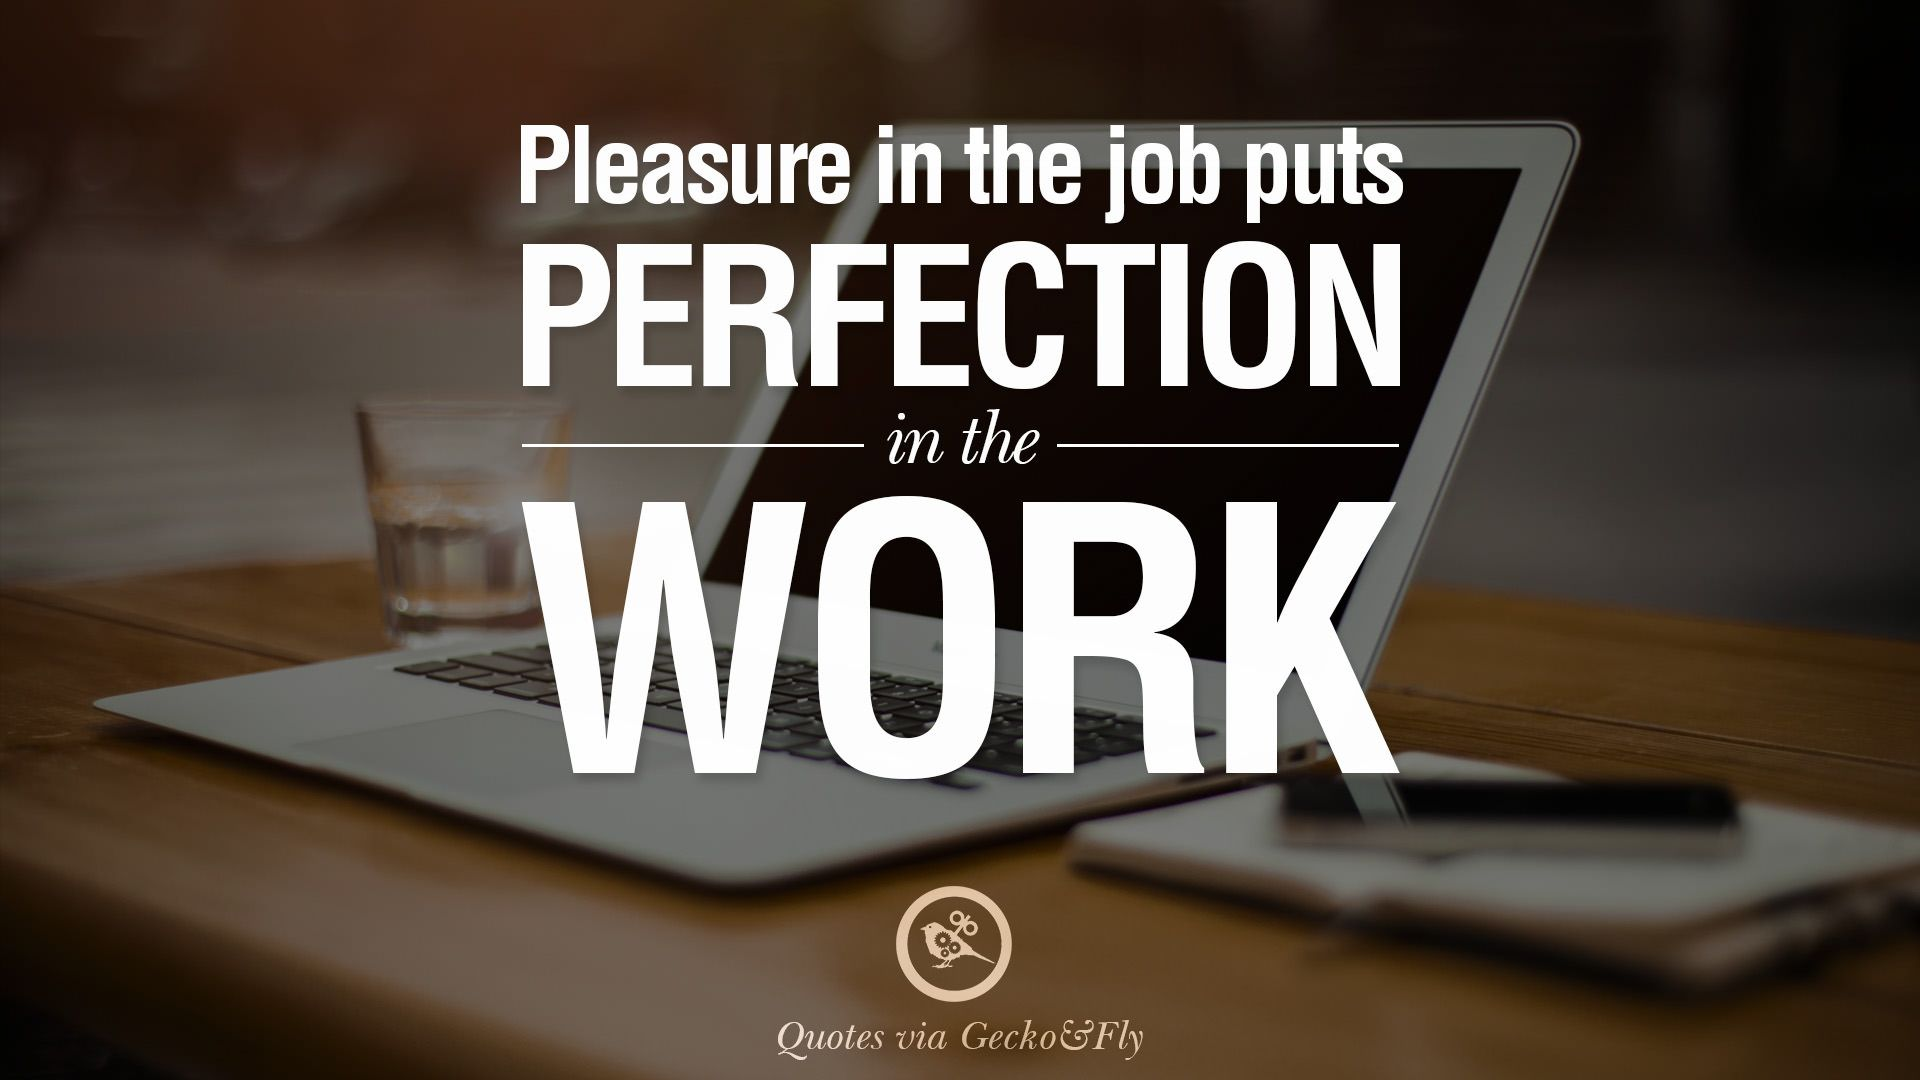 50 Quotes On Passion At Work And Productivity That Lead To